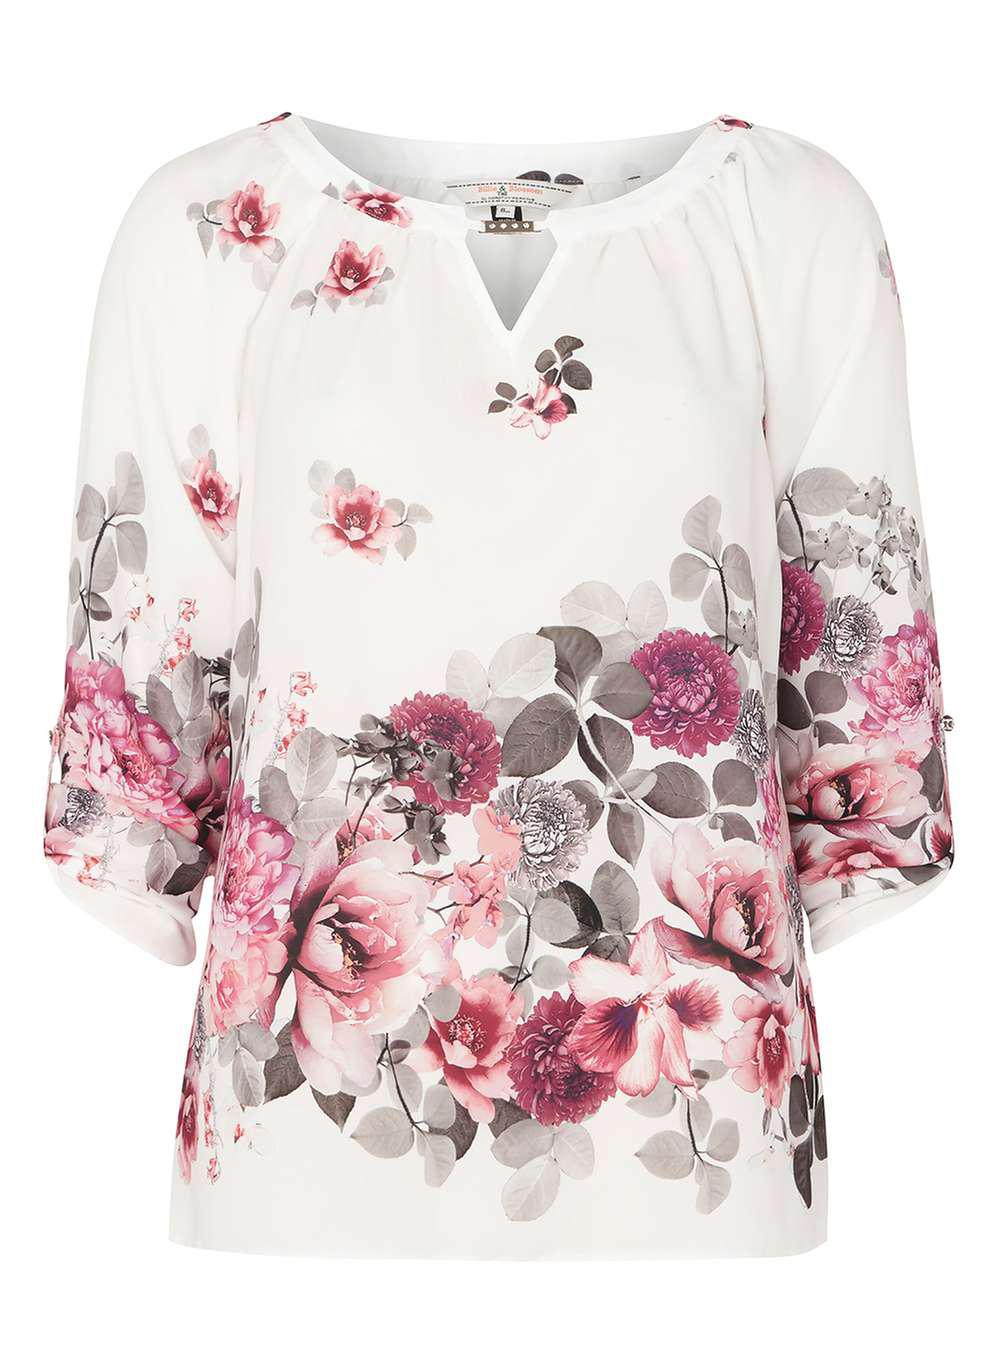 51f73efd79f1a6 Lyst - Dorothy Perkins Billie & Blossom Tall Ivory Floral Blouse in ...